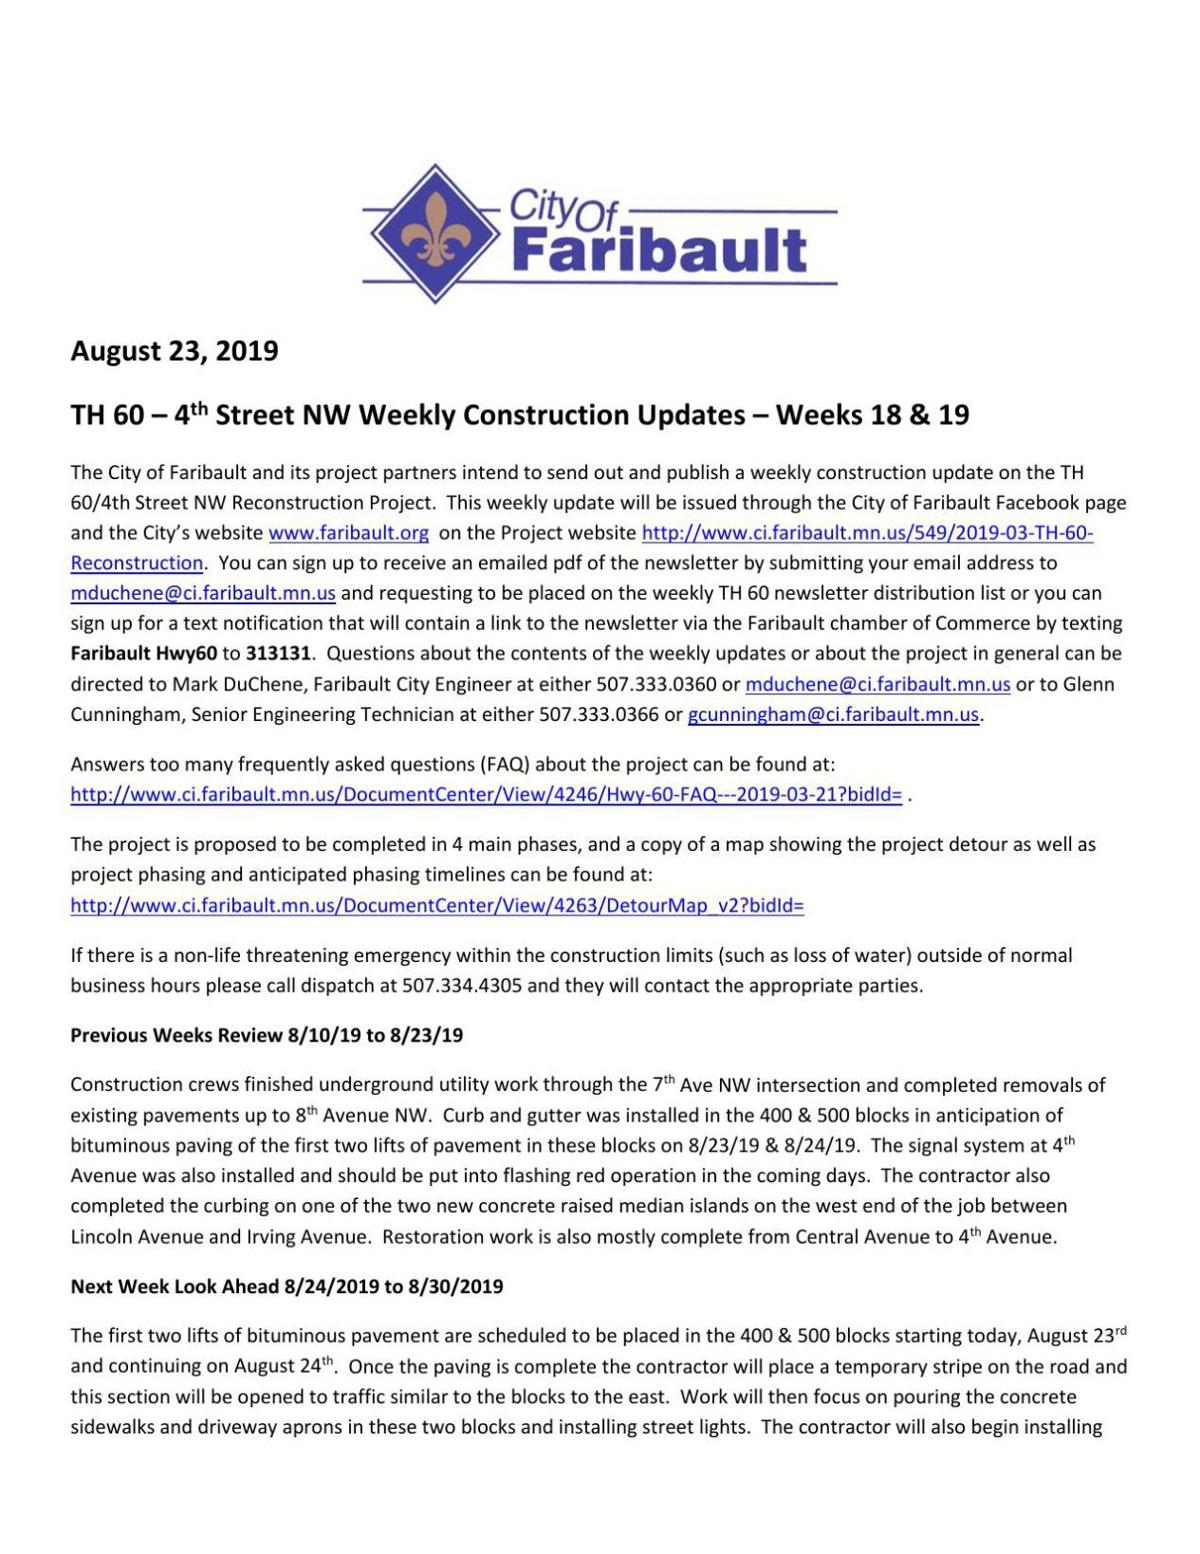 Hwy. 60/Fourth St. weekly update - Aug. 23